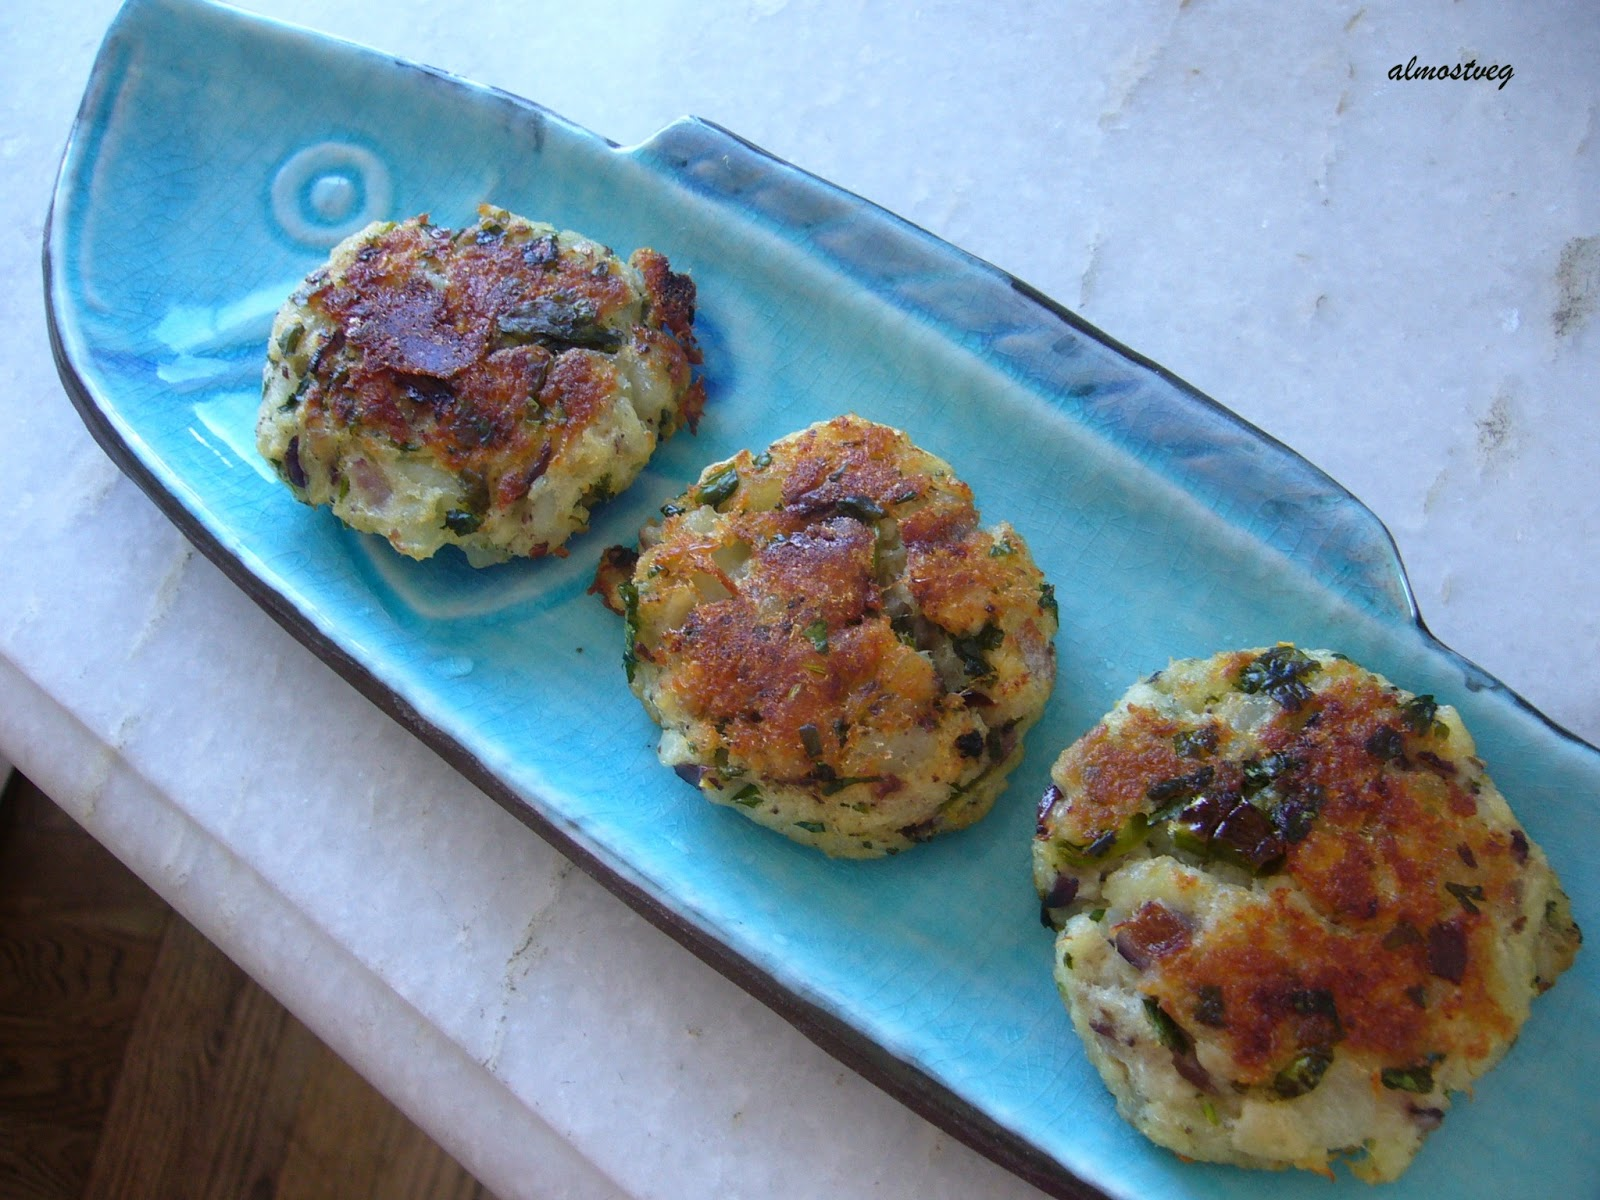 Almostveg baked fish cakes with cilantro and sumac for Baked fish cakes